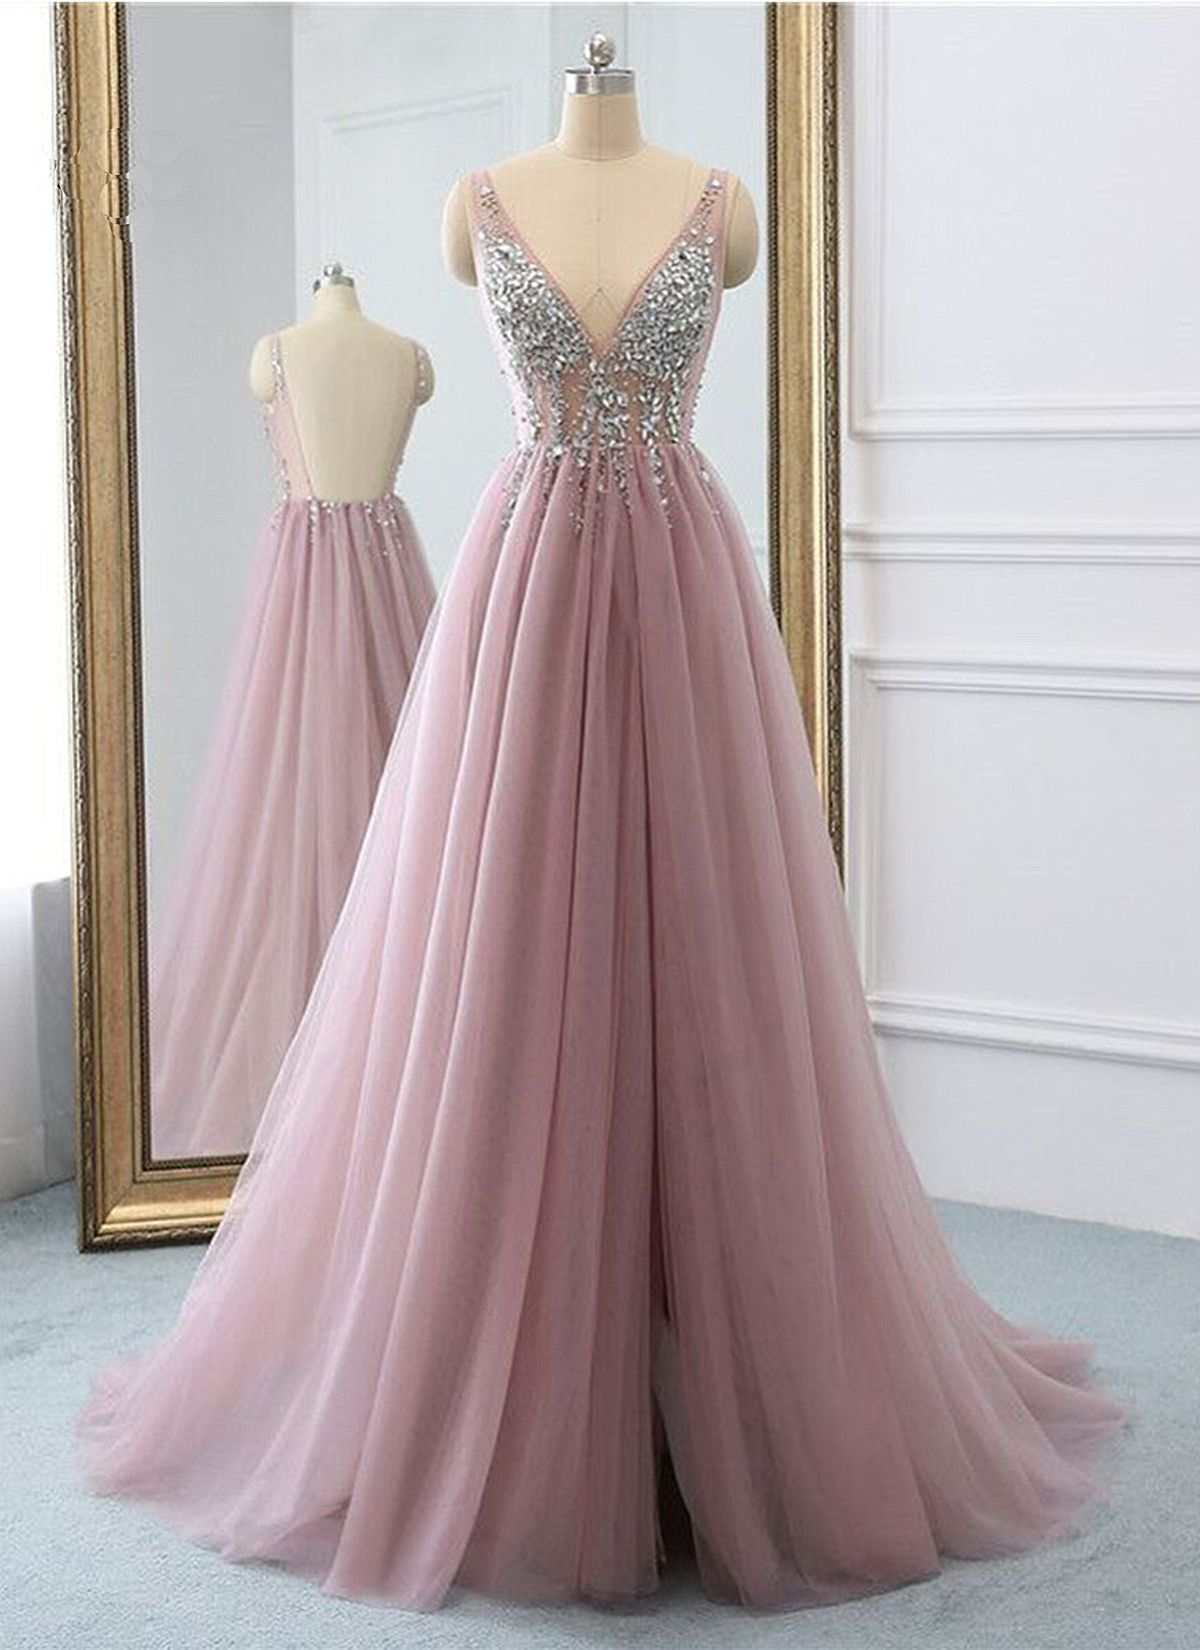 2acbc15c421 Handmade+item Materials +Tulle Made+to+order Color Refer+to+image  Processing+time 15-25+business+days Delivery+date 5-10+business+days  Dress+code E1029 ...